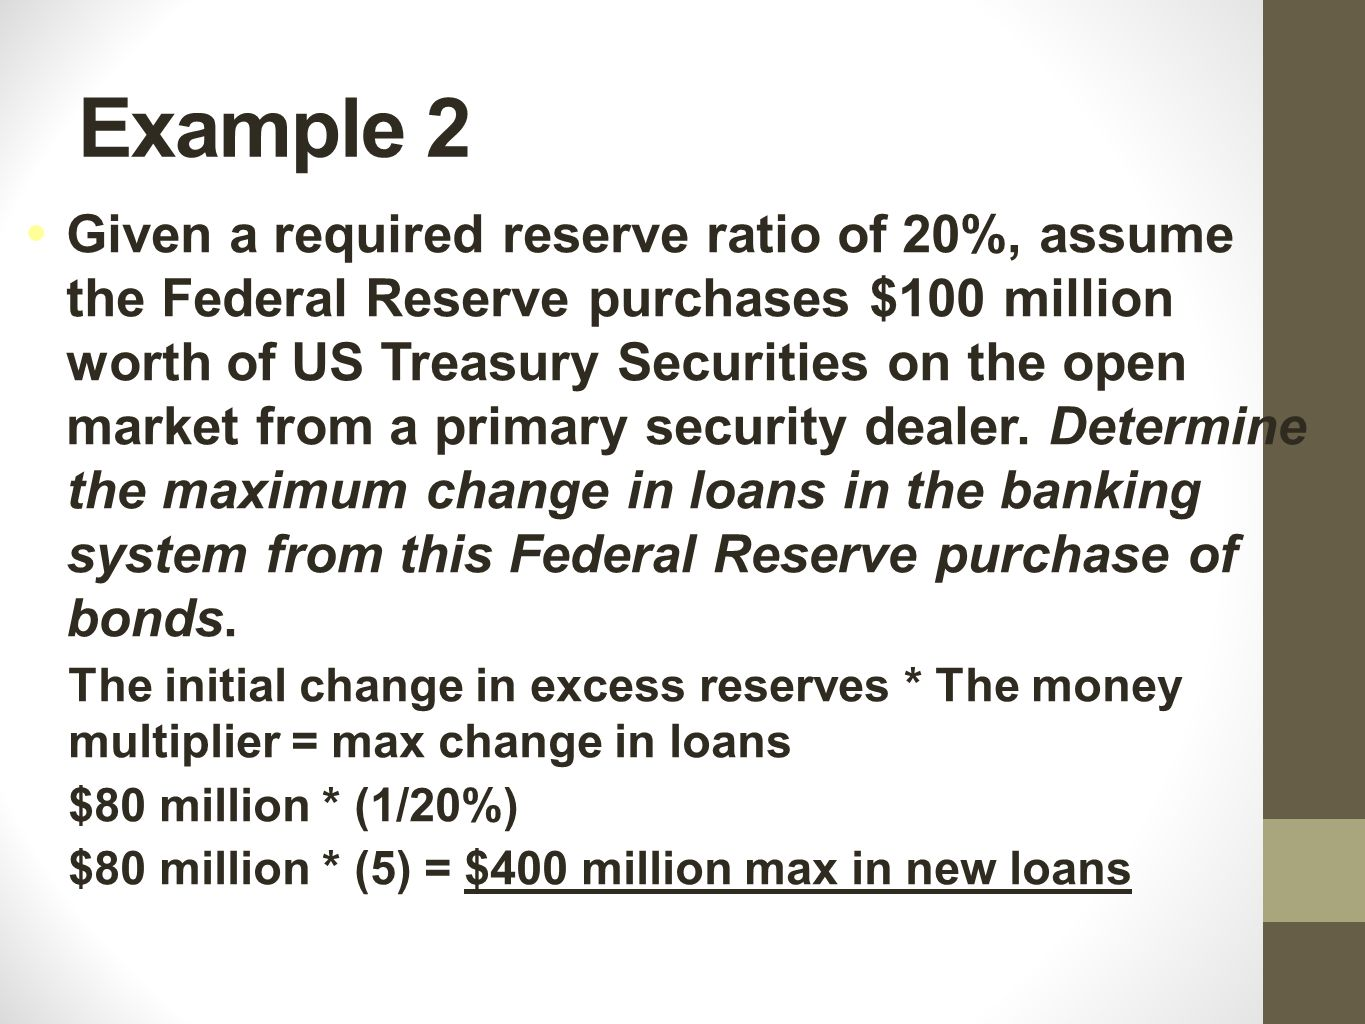 Example 3 Given a required reserve ratio of 20%, assume the Federal Reserve purchases $100 million worth of US Treasury Securities on the open market from a primary security dealer.